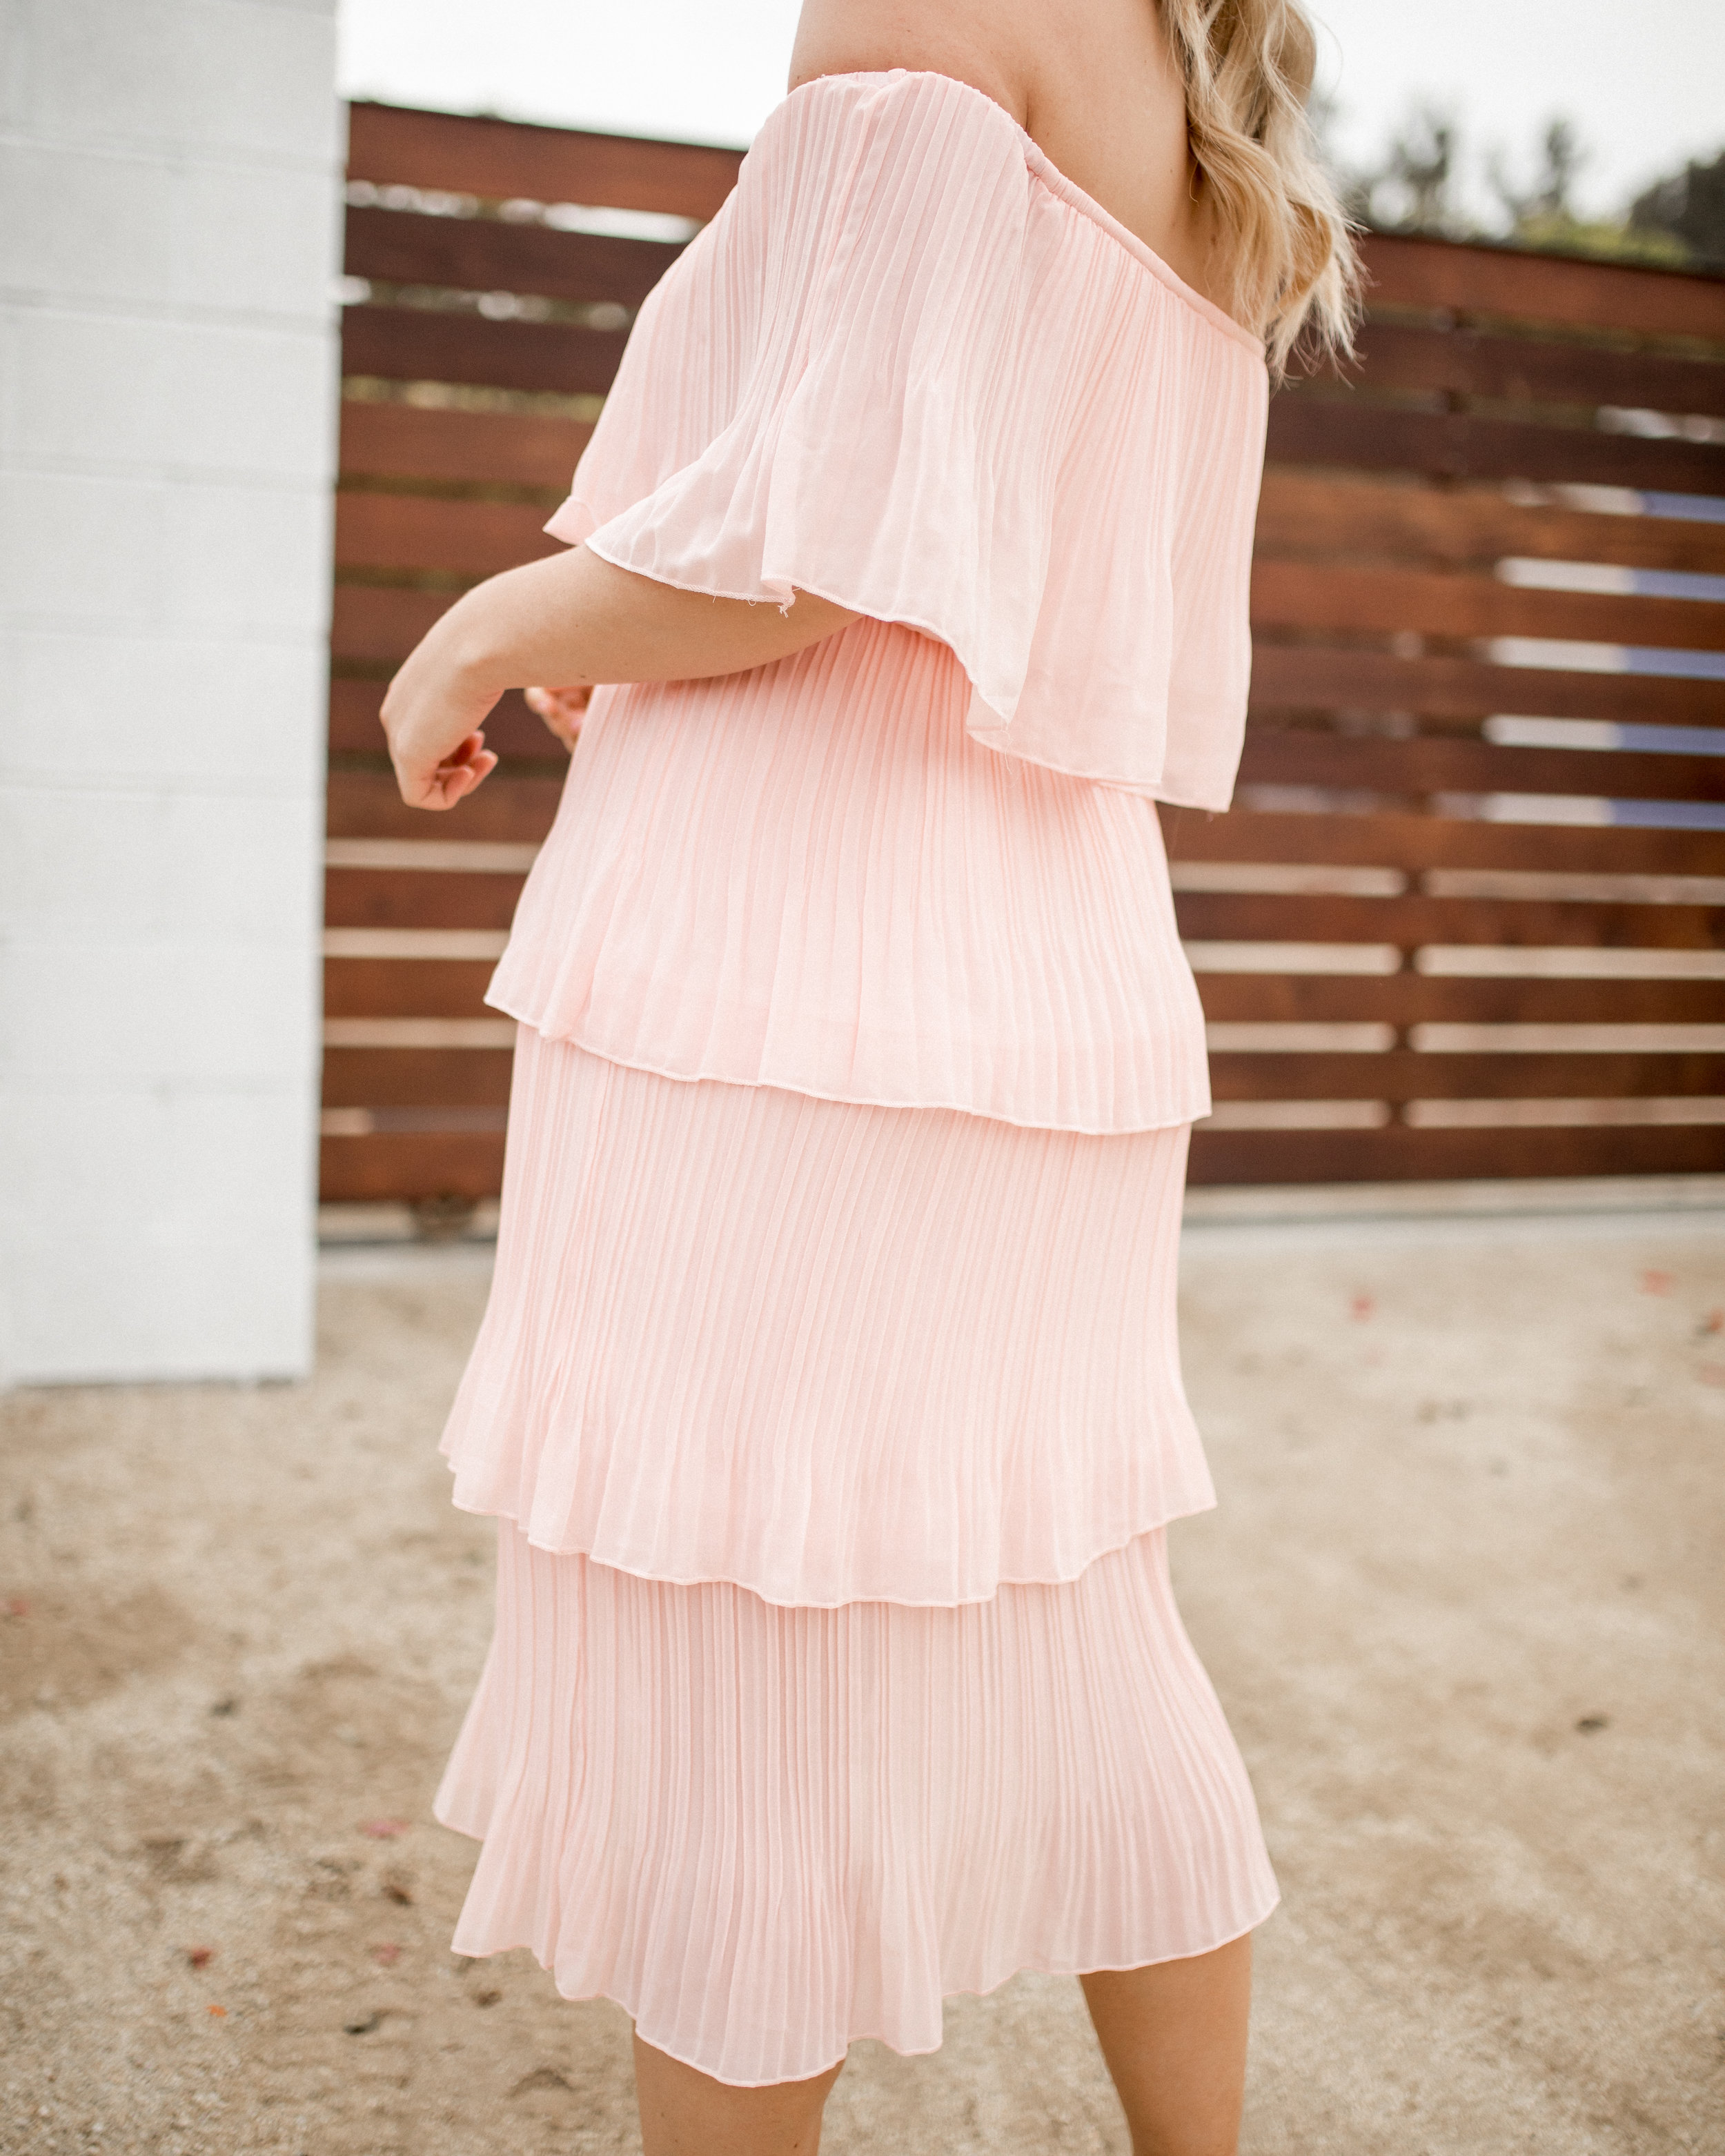 what-to-wear-to-a-wedding-2.jpg